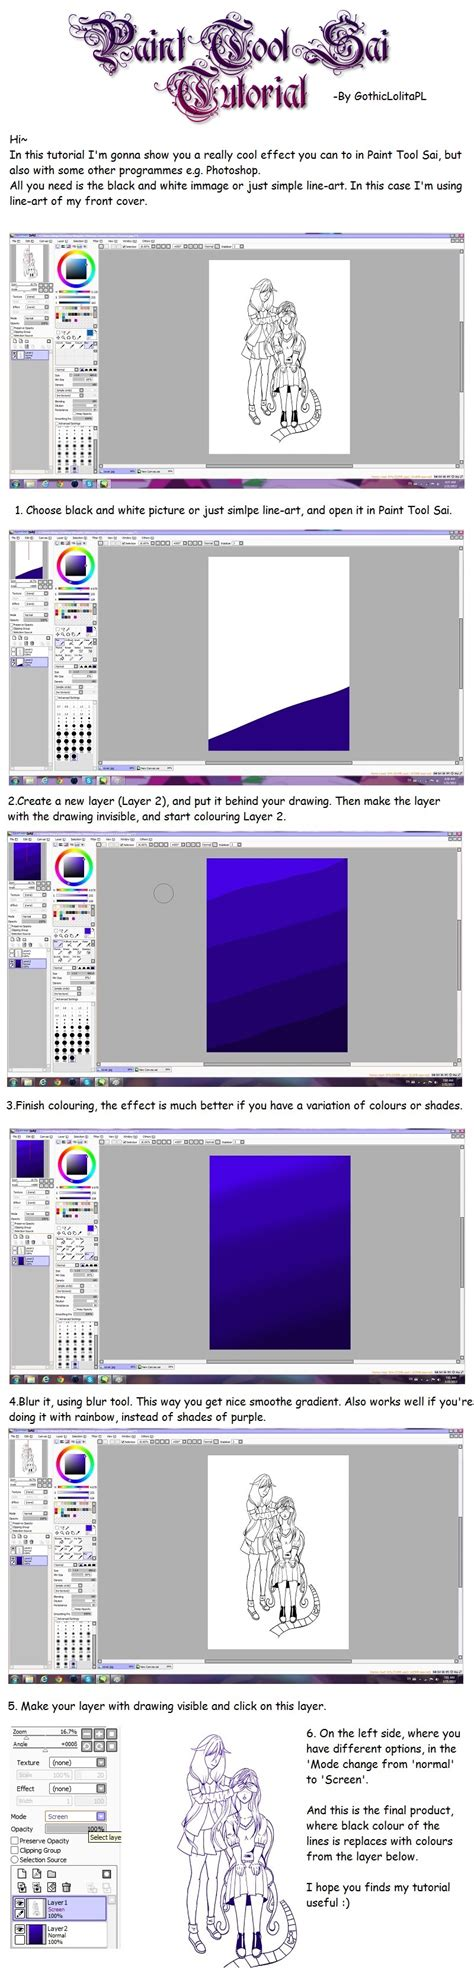 paint tool sai watercolor effect paint tool sai tutorial awesome effect by gothiclolitapl